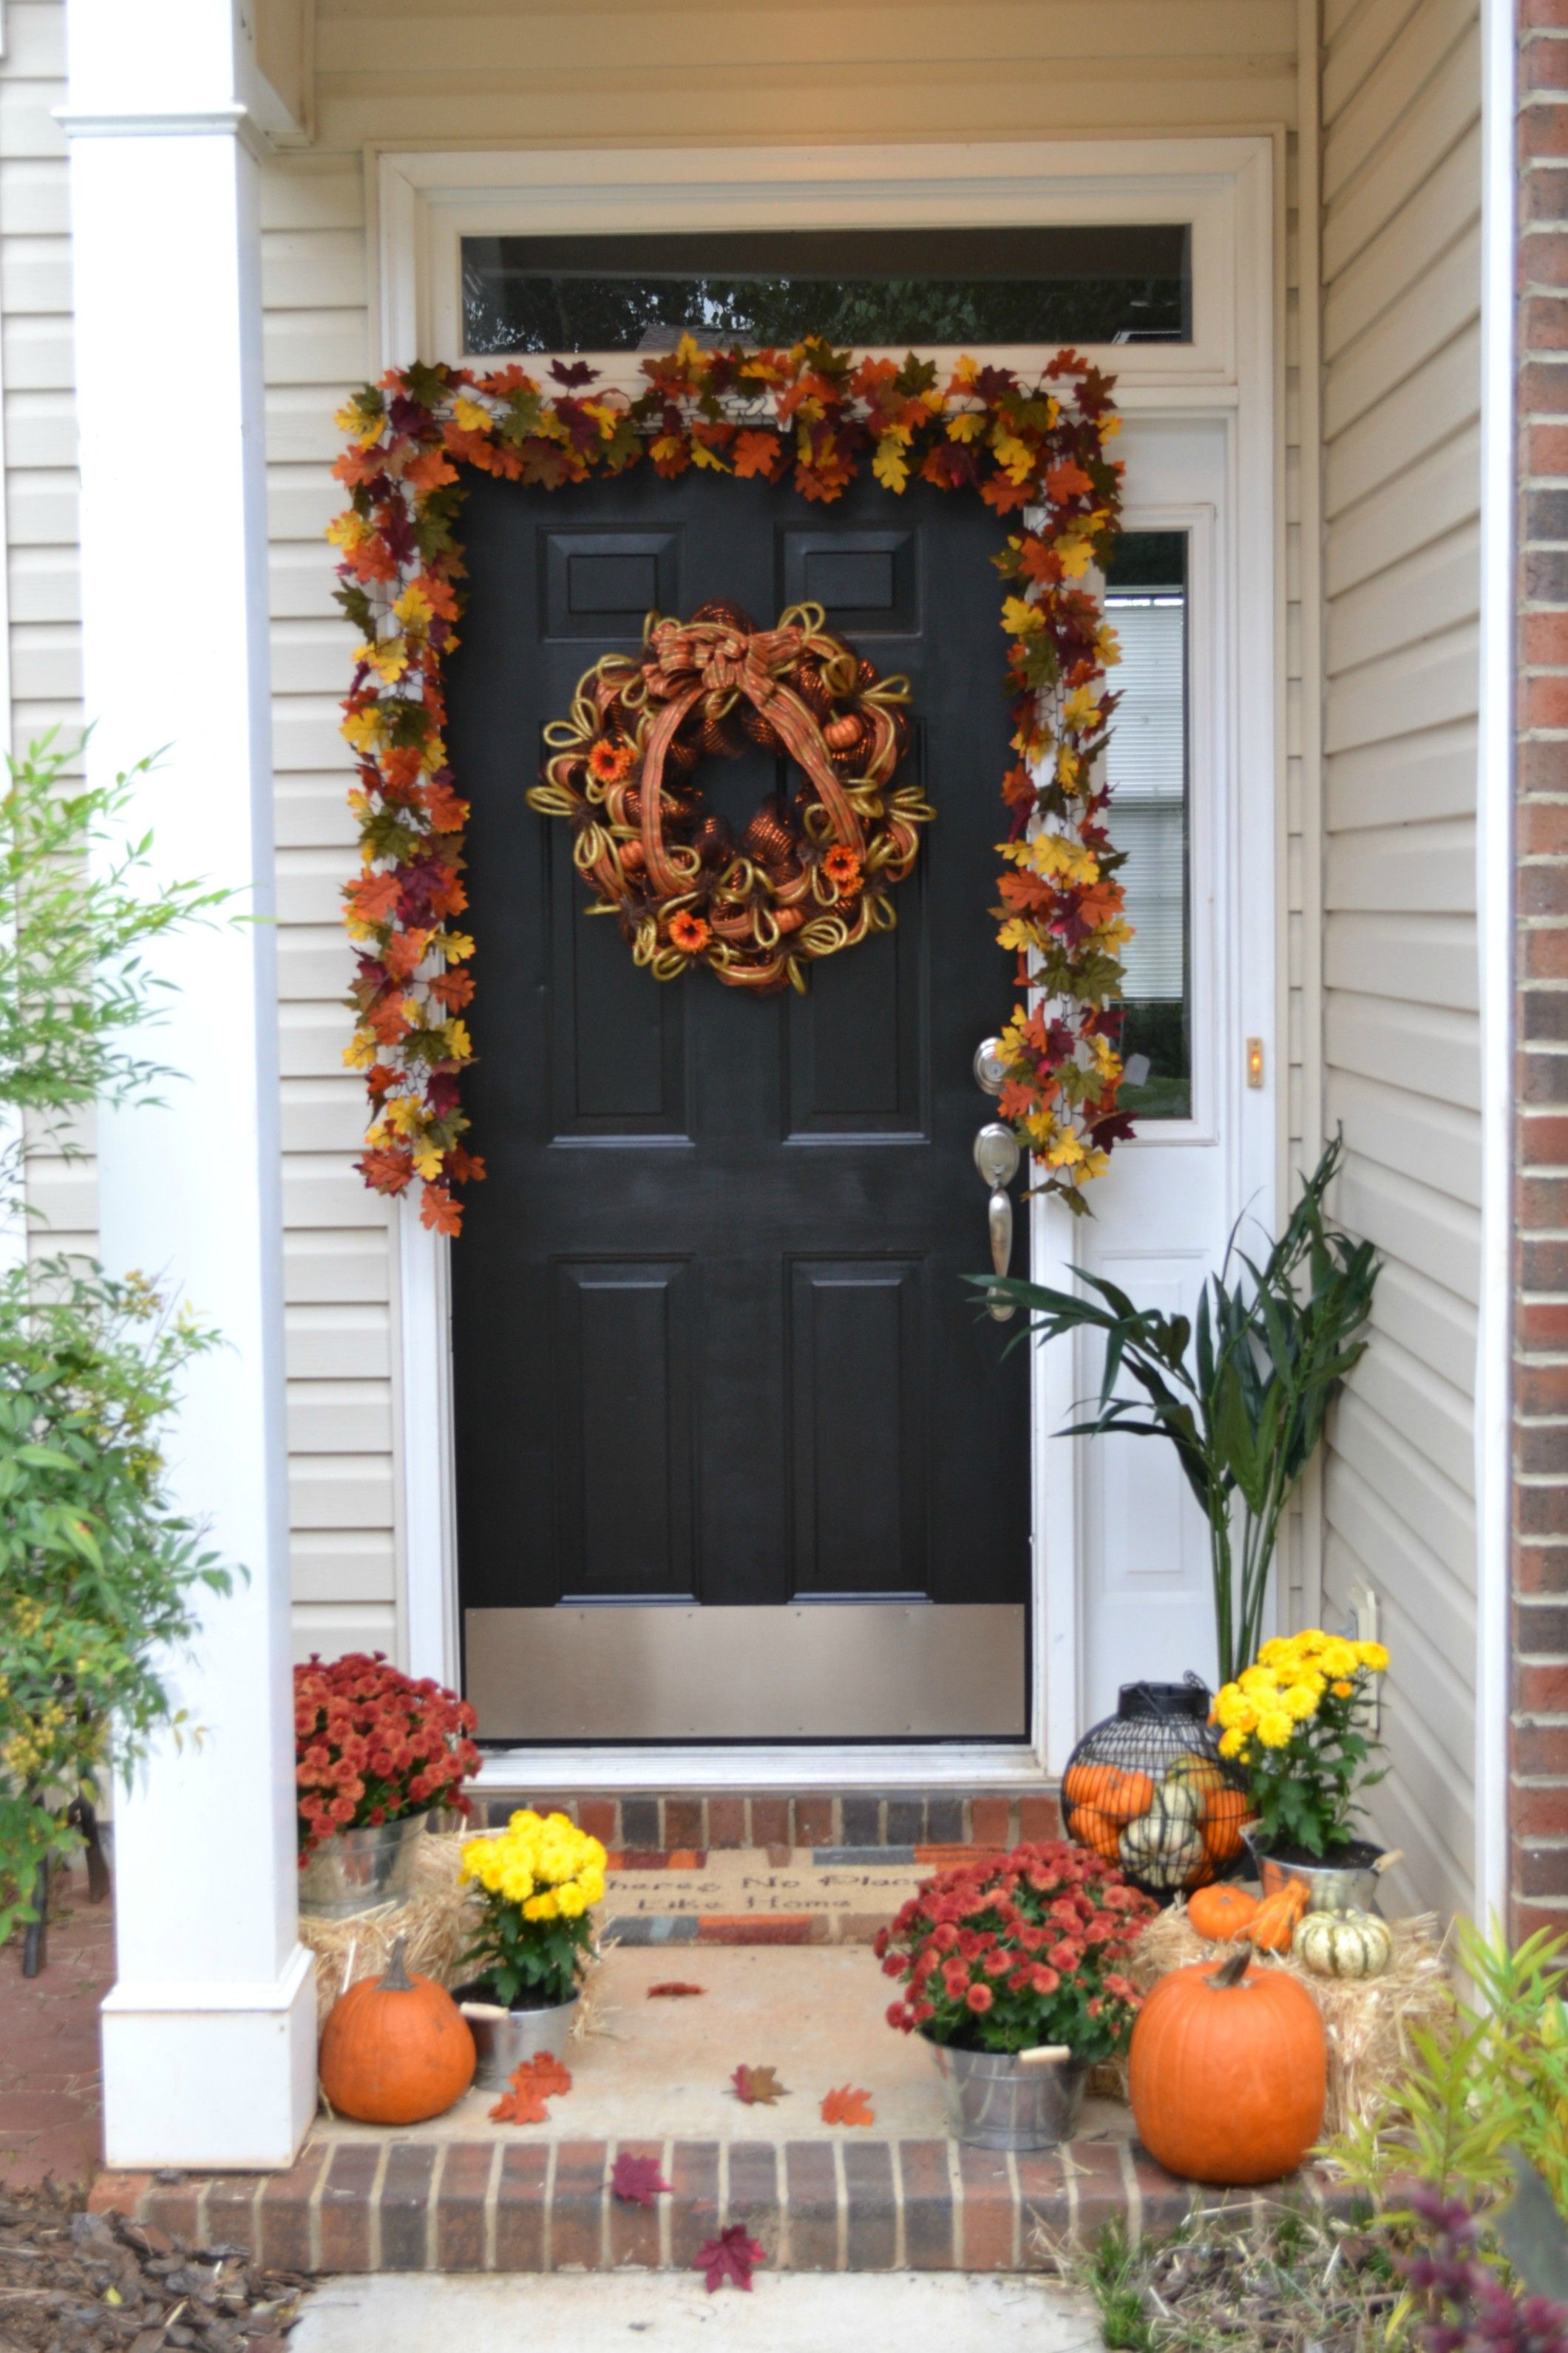 Above exterior window decor   sweet fall front door decor ideas to make a fantastic first